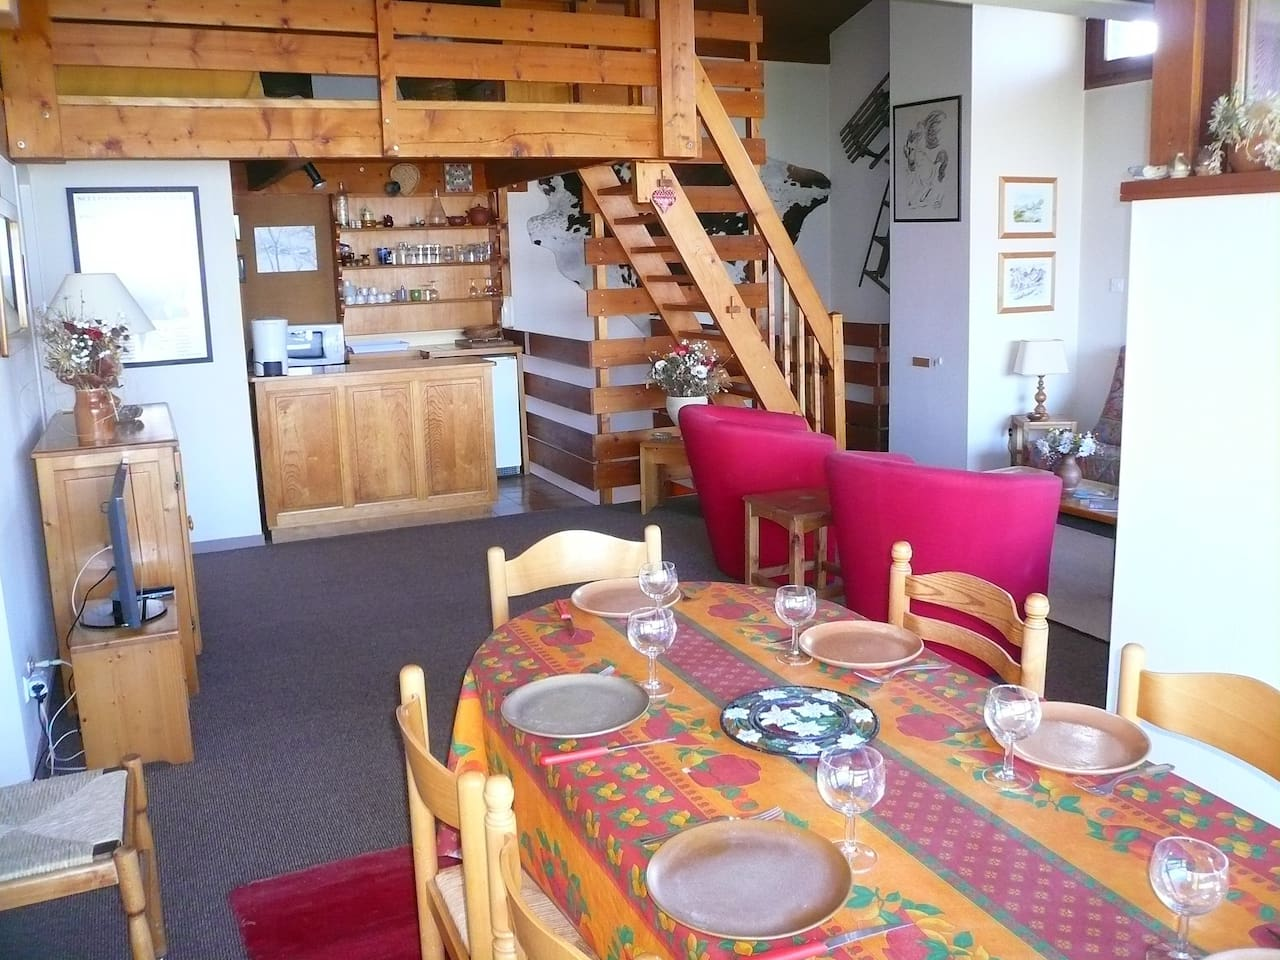 Come and stay in our cozy duplex apartment in Combloux!